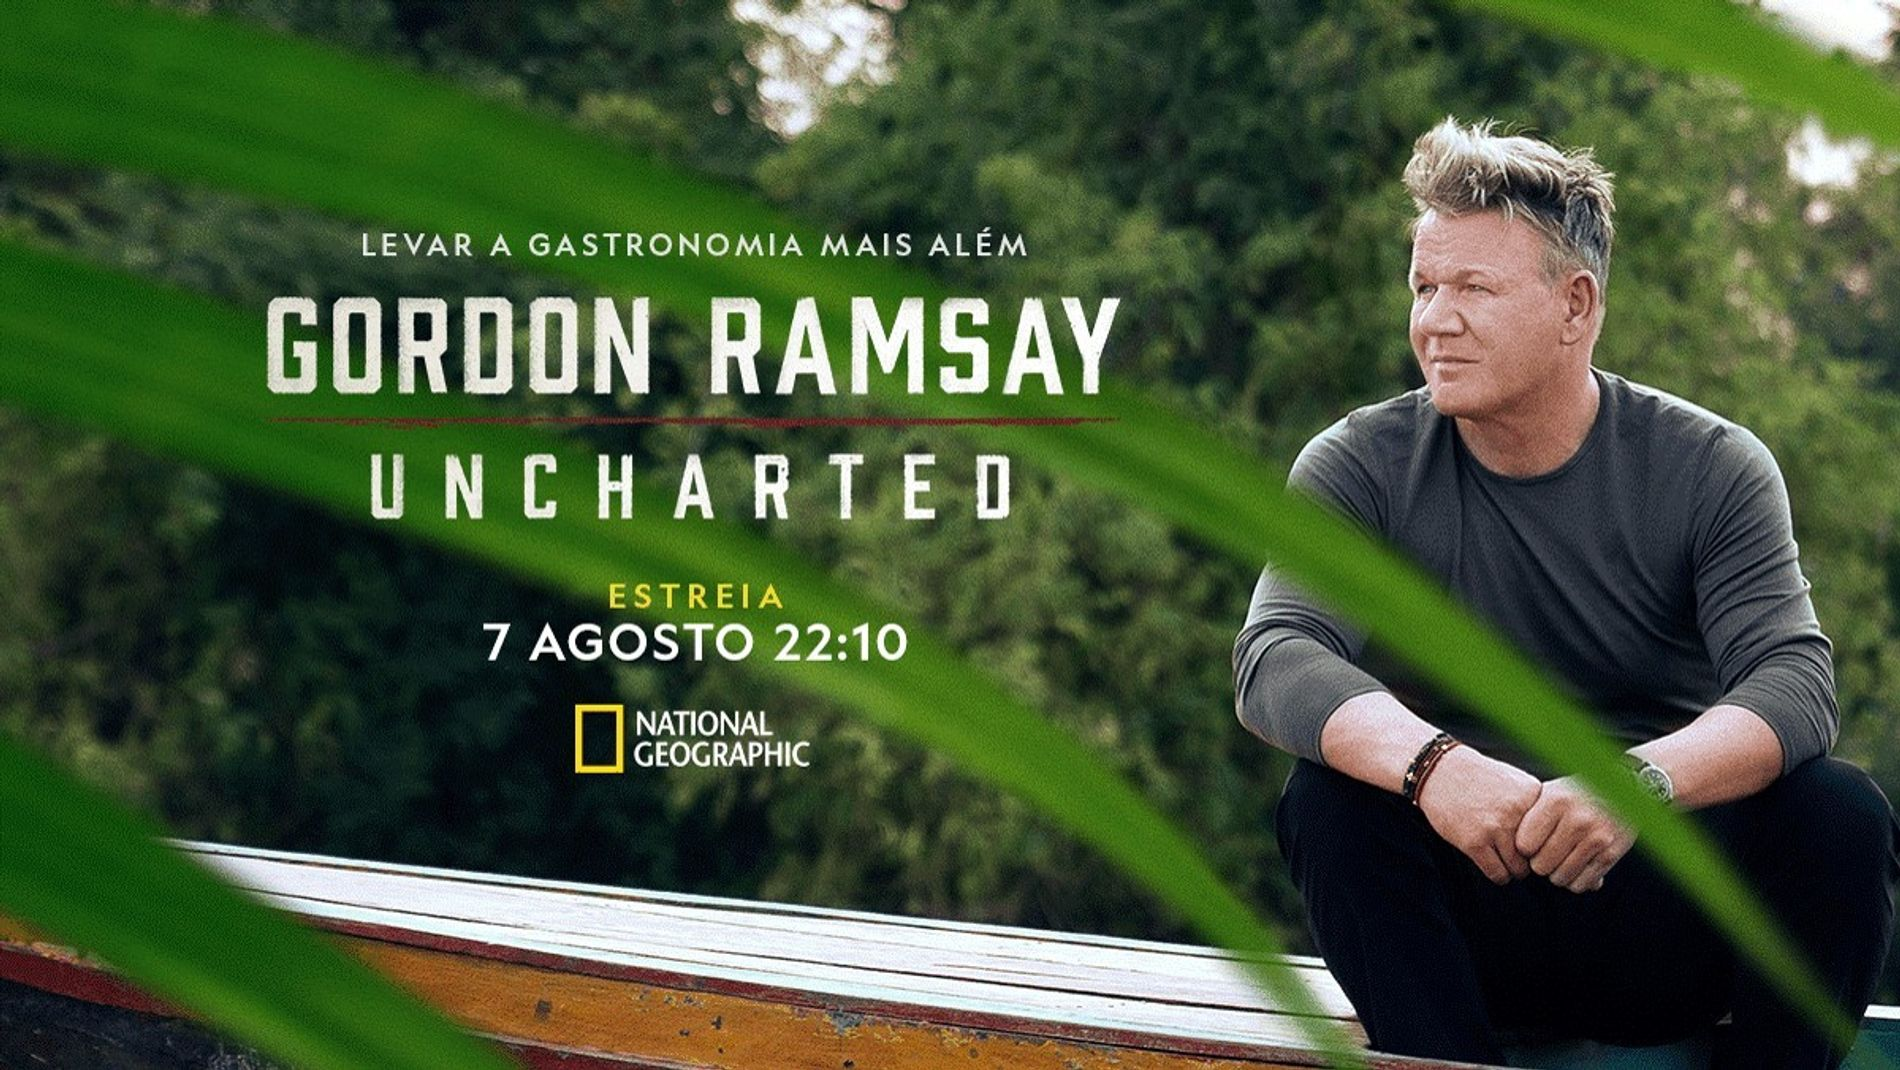 Trailer - Gordon Ramsay: Uncharted